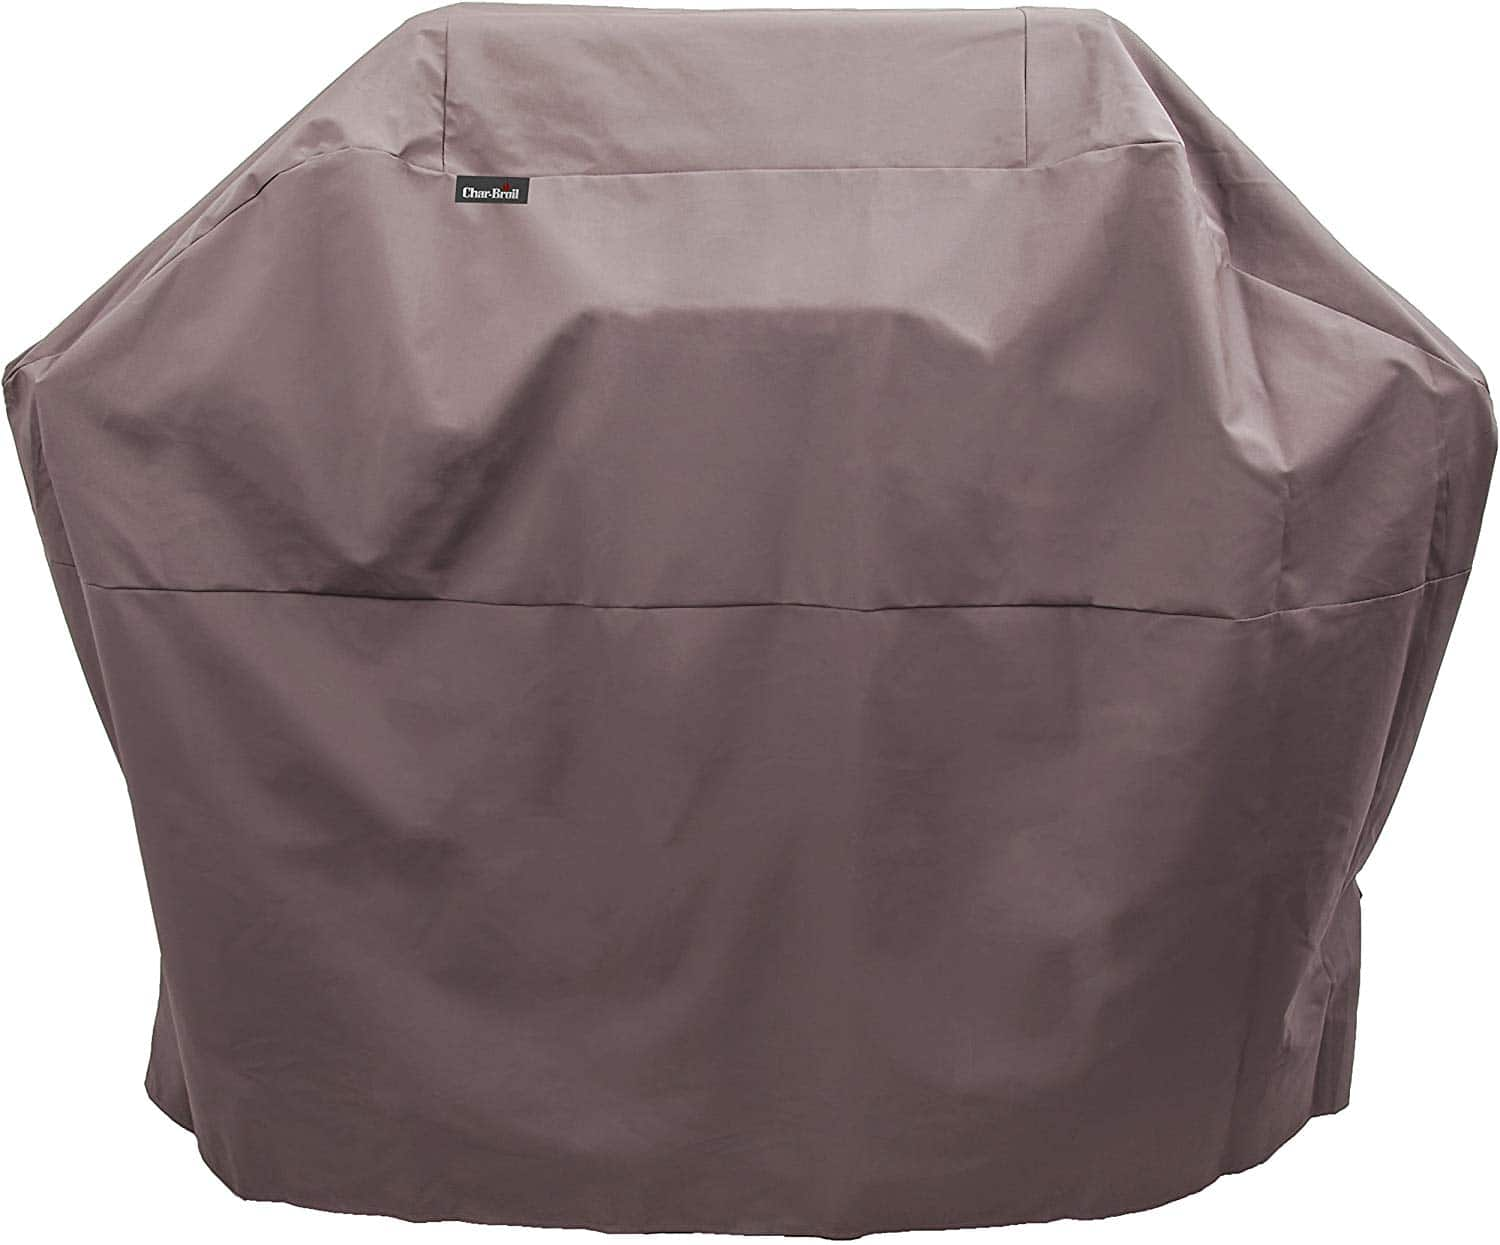 Char-Broil 3-4 Burner Large Performance Grill Cover- Tan - Amazon $9.99